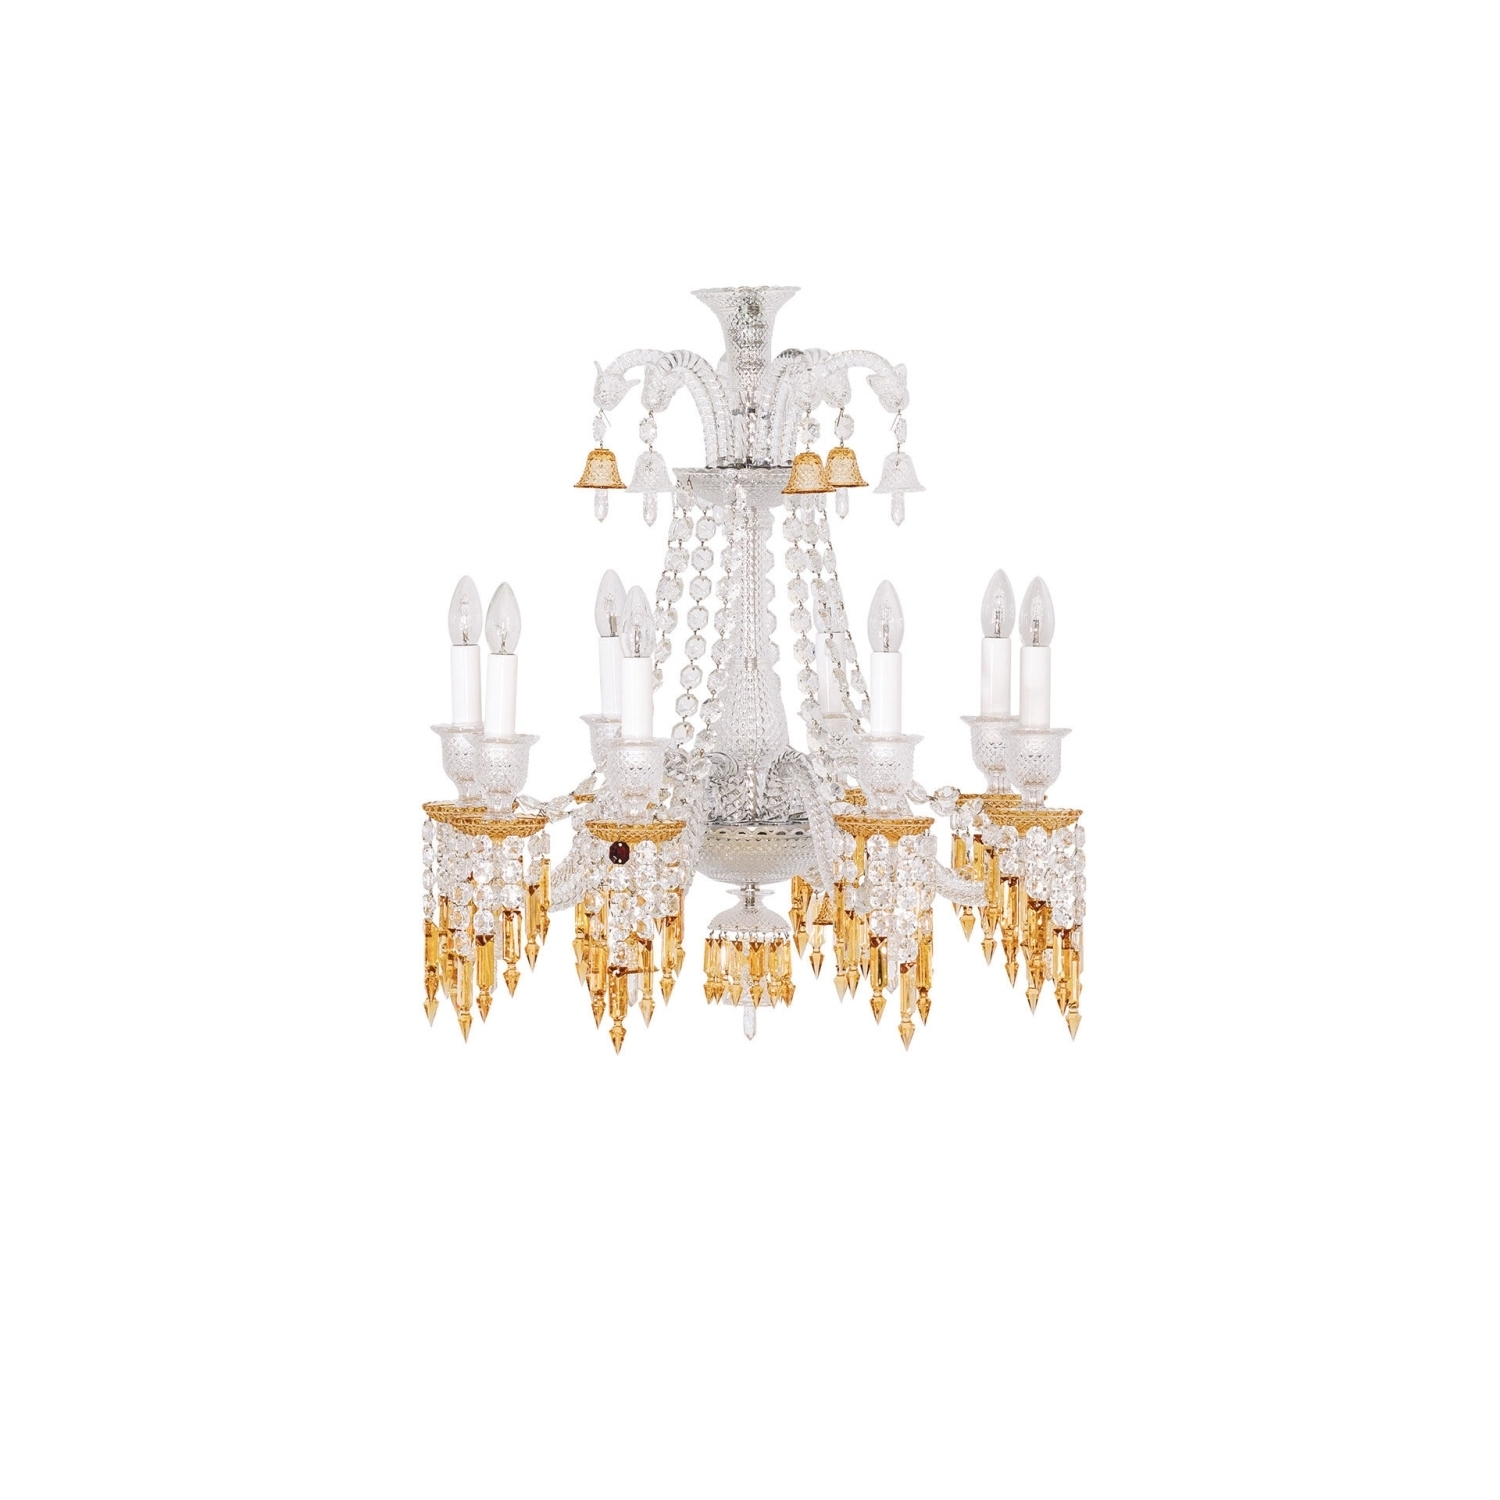 Chandelier 8l Baccarat Zenith Charleston 2809404 Throughout Most Popular Short Chandeliers (View 8 of 20)